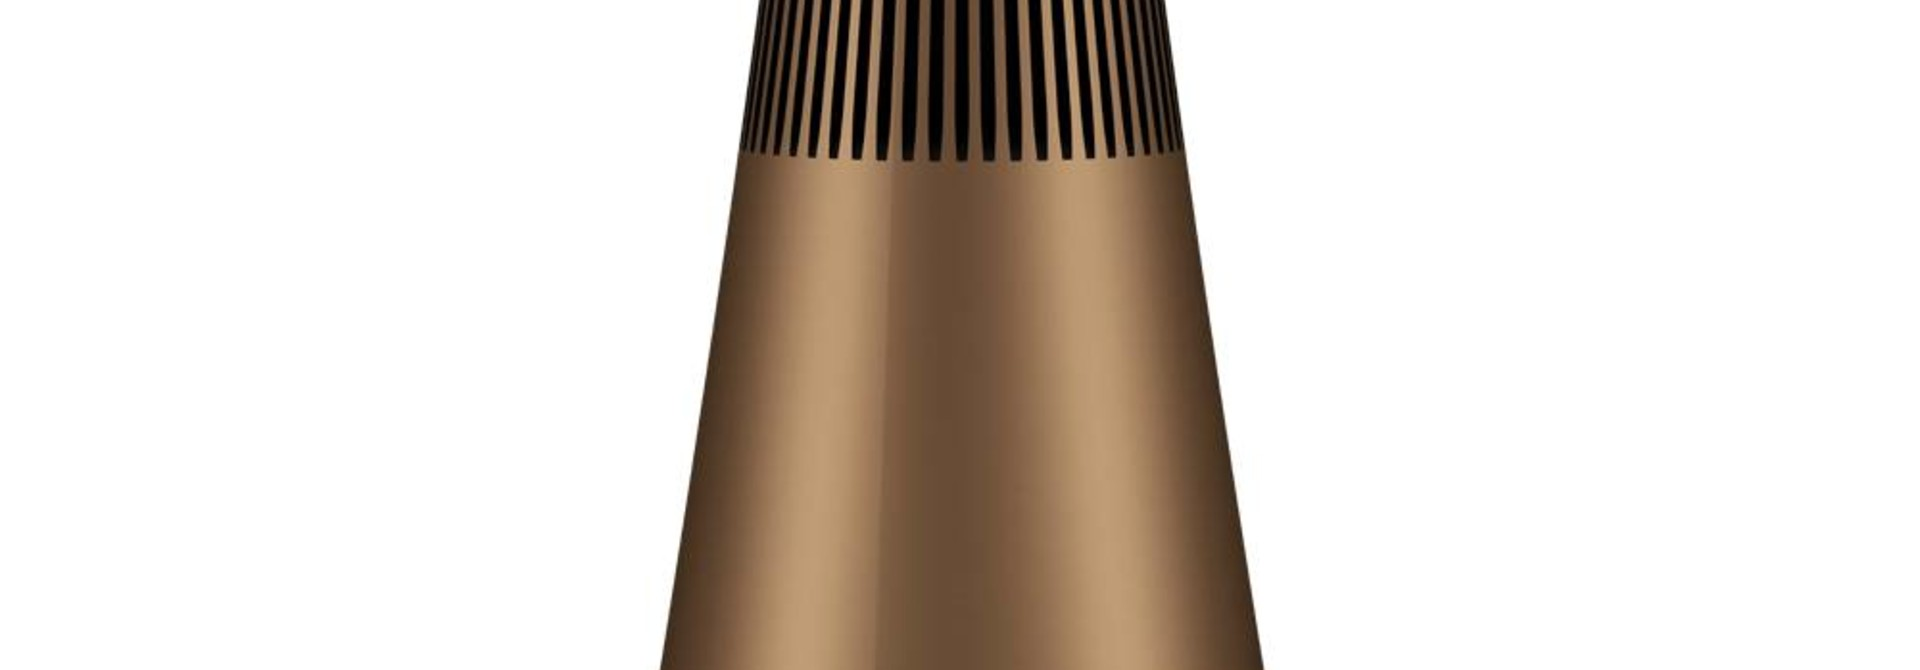 BeoSound 2 2nd generation Google Voice